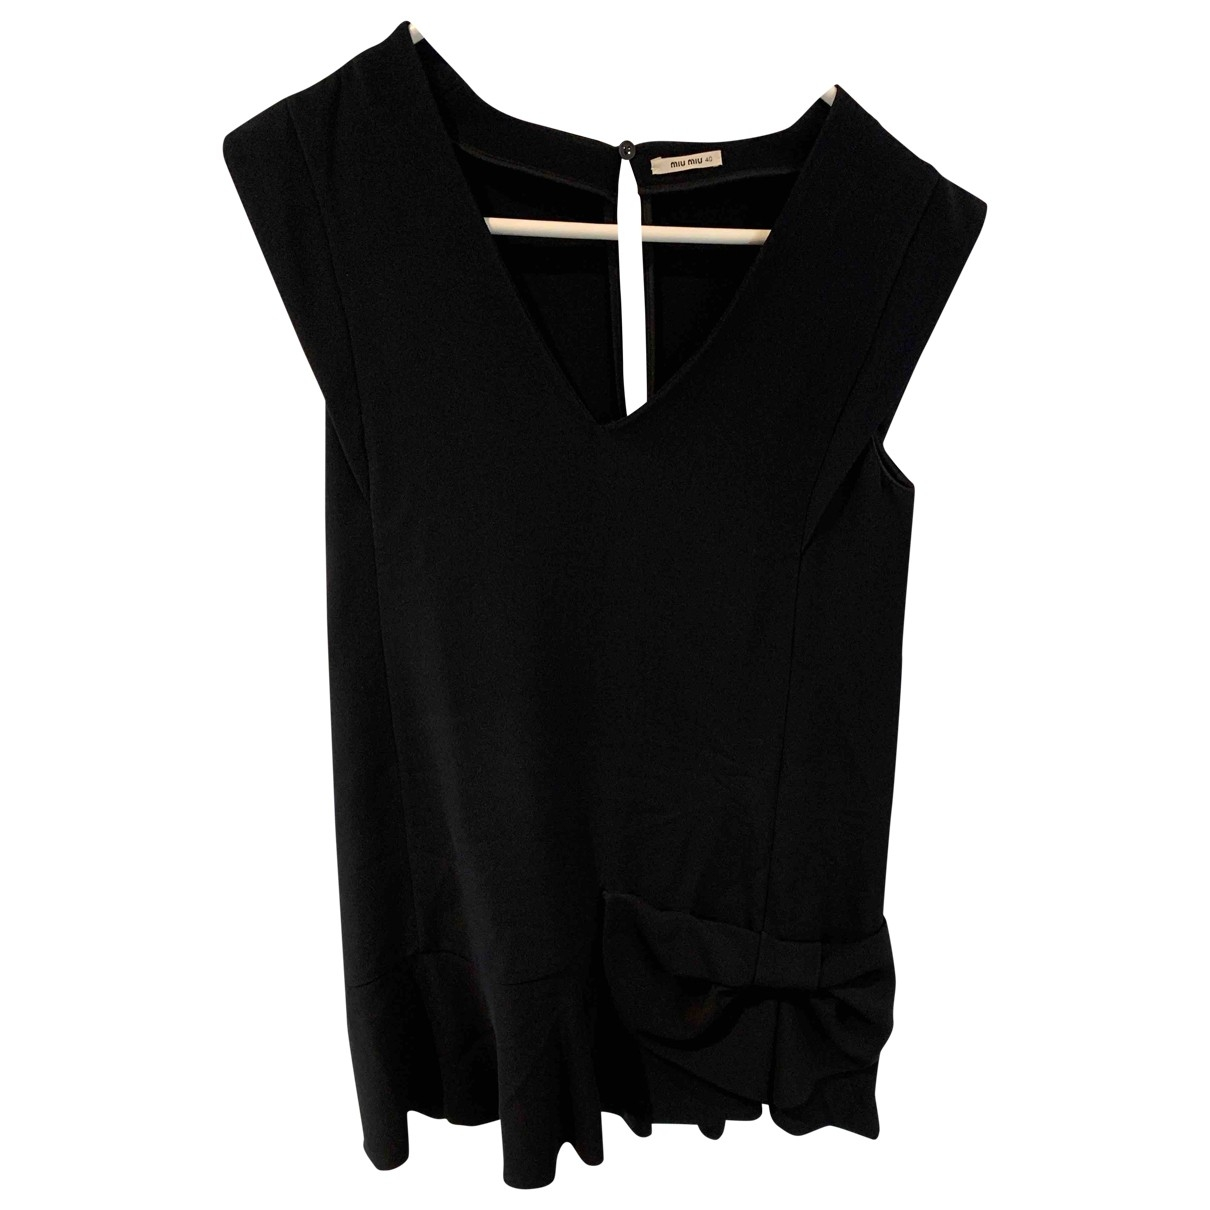 Miu Miu \N Black dress for Women 40 IT